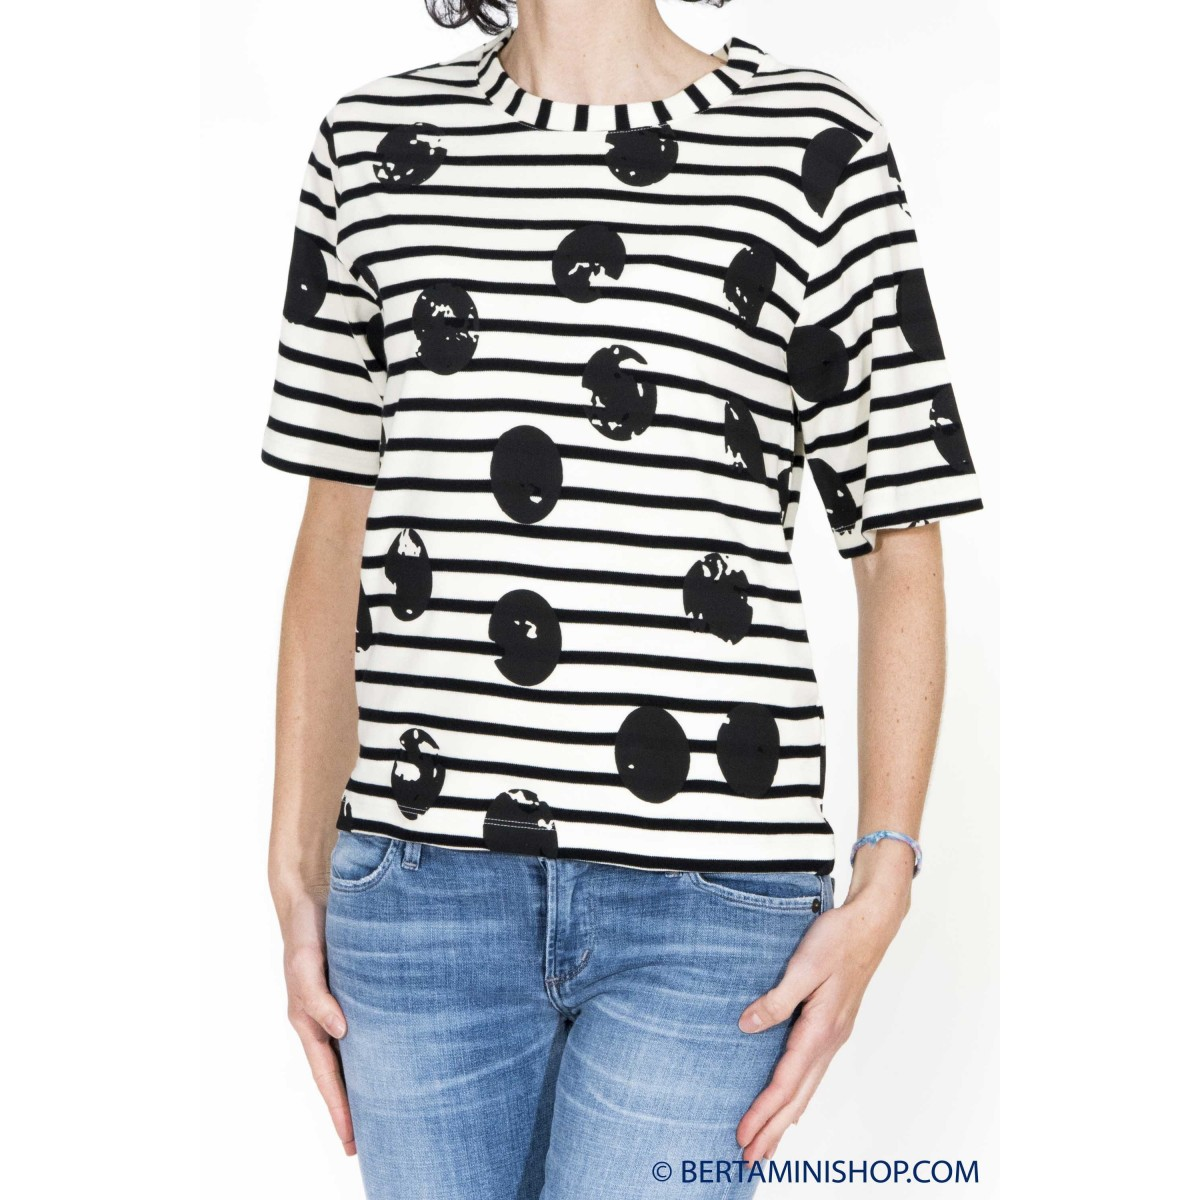 T-shirt donna Erika cavallini - semicouture - 111 t-shirt mc